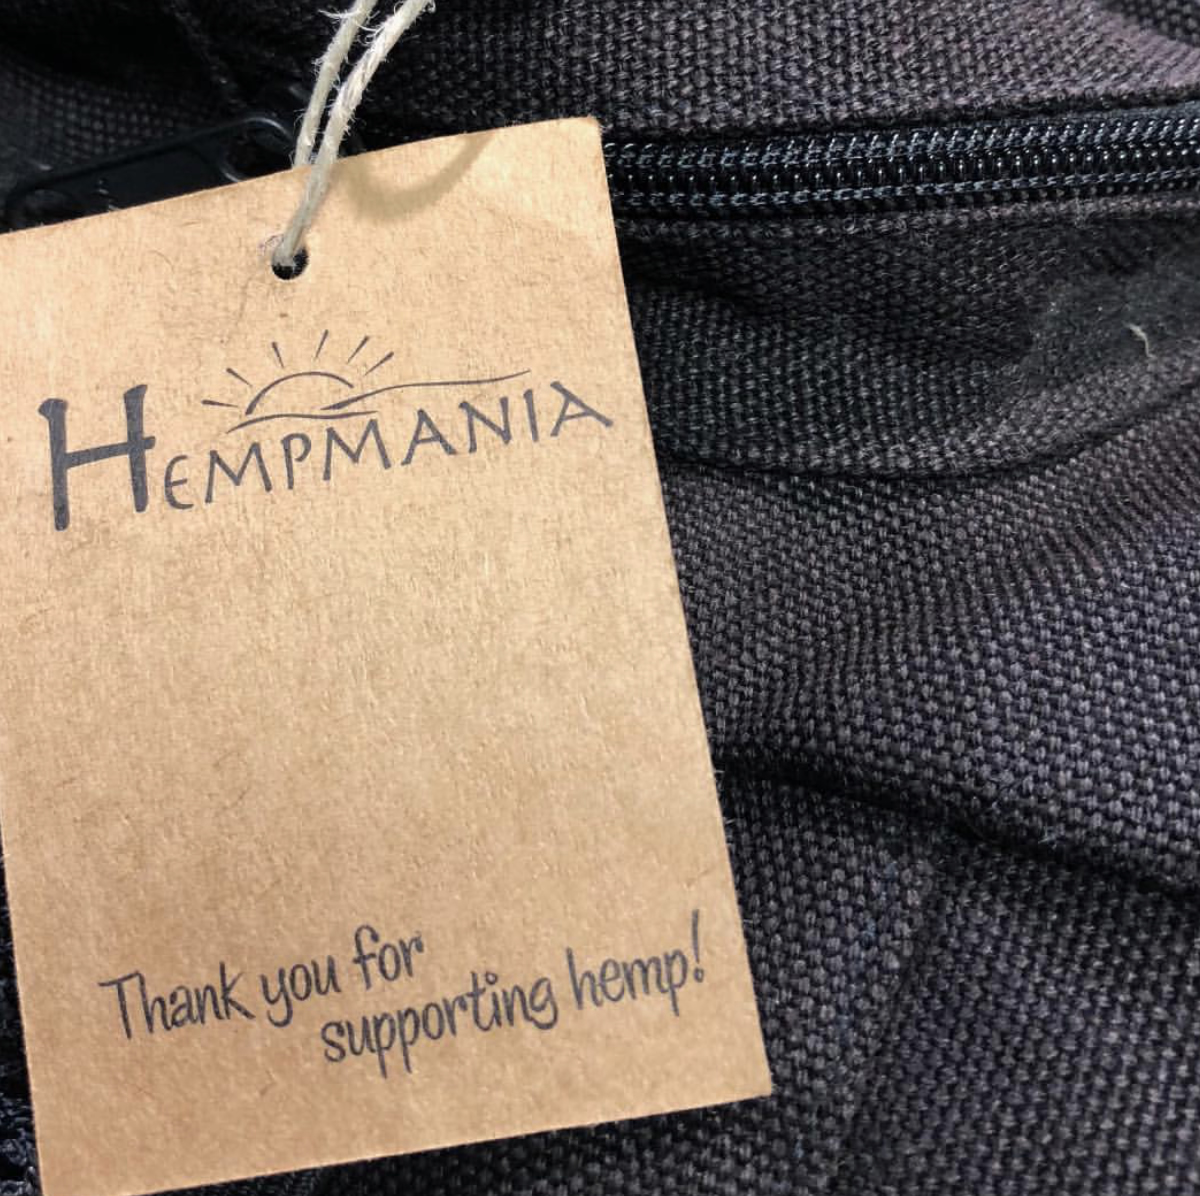 About Hemp Mania… - Since 1997 Hempmania has created an extensive line of high quality, earth-friendly hemp products including hemp bags, hemp backpacks, hemp wallets and a wide range of hemp accessories. We focus on creating the line in a socially responsible way in adherence to fair-trade practices and principles. All of our hemp bags and accessories are manufactured in the highlands of Guatemala by an indigenous Mayan family business. Our company is constantly creating new hemp products for our hemp retail and hemp wholesale customers.